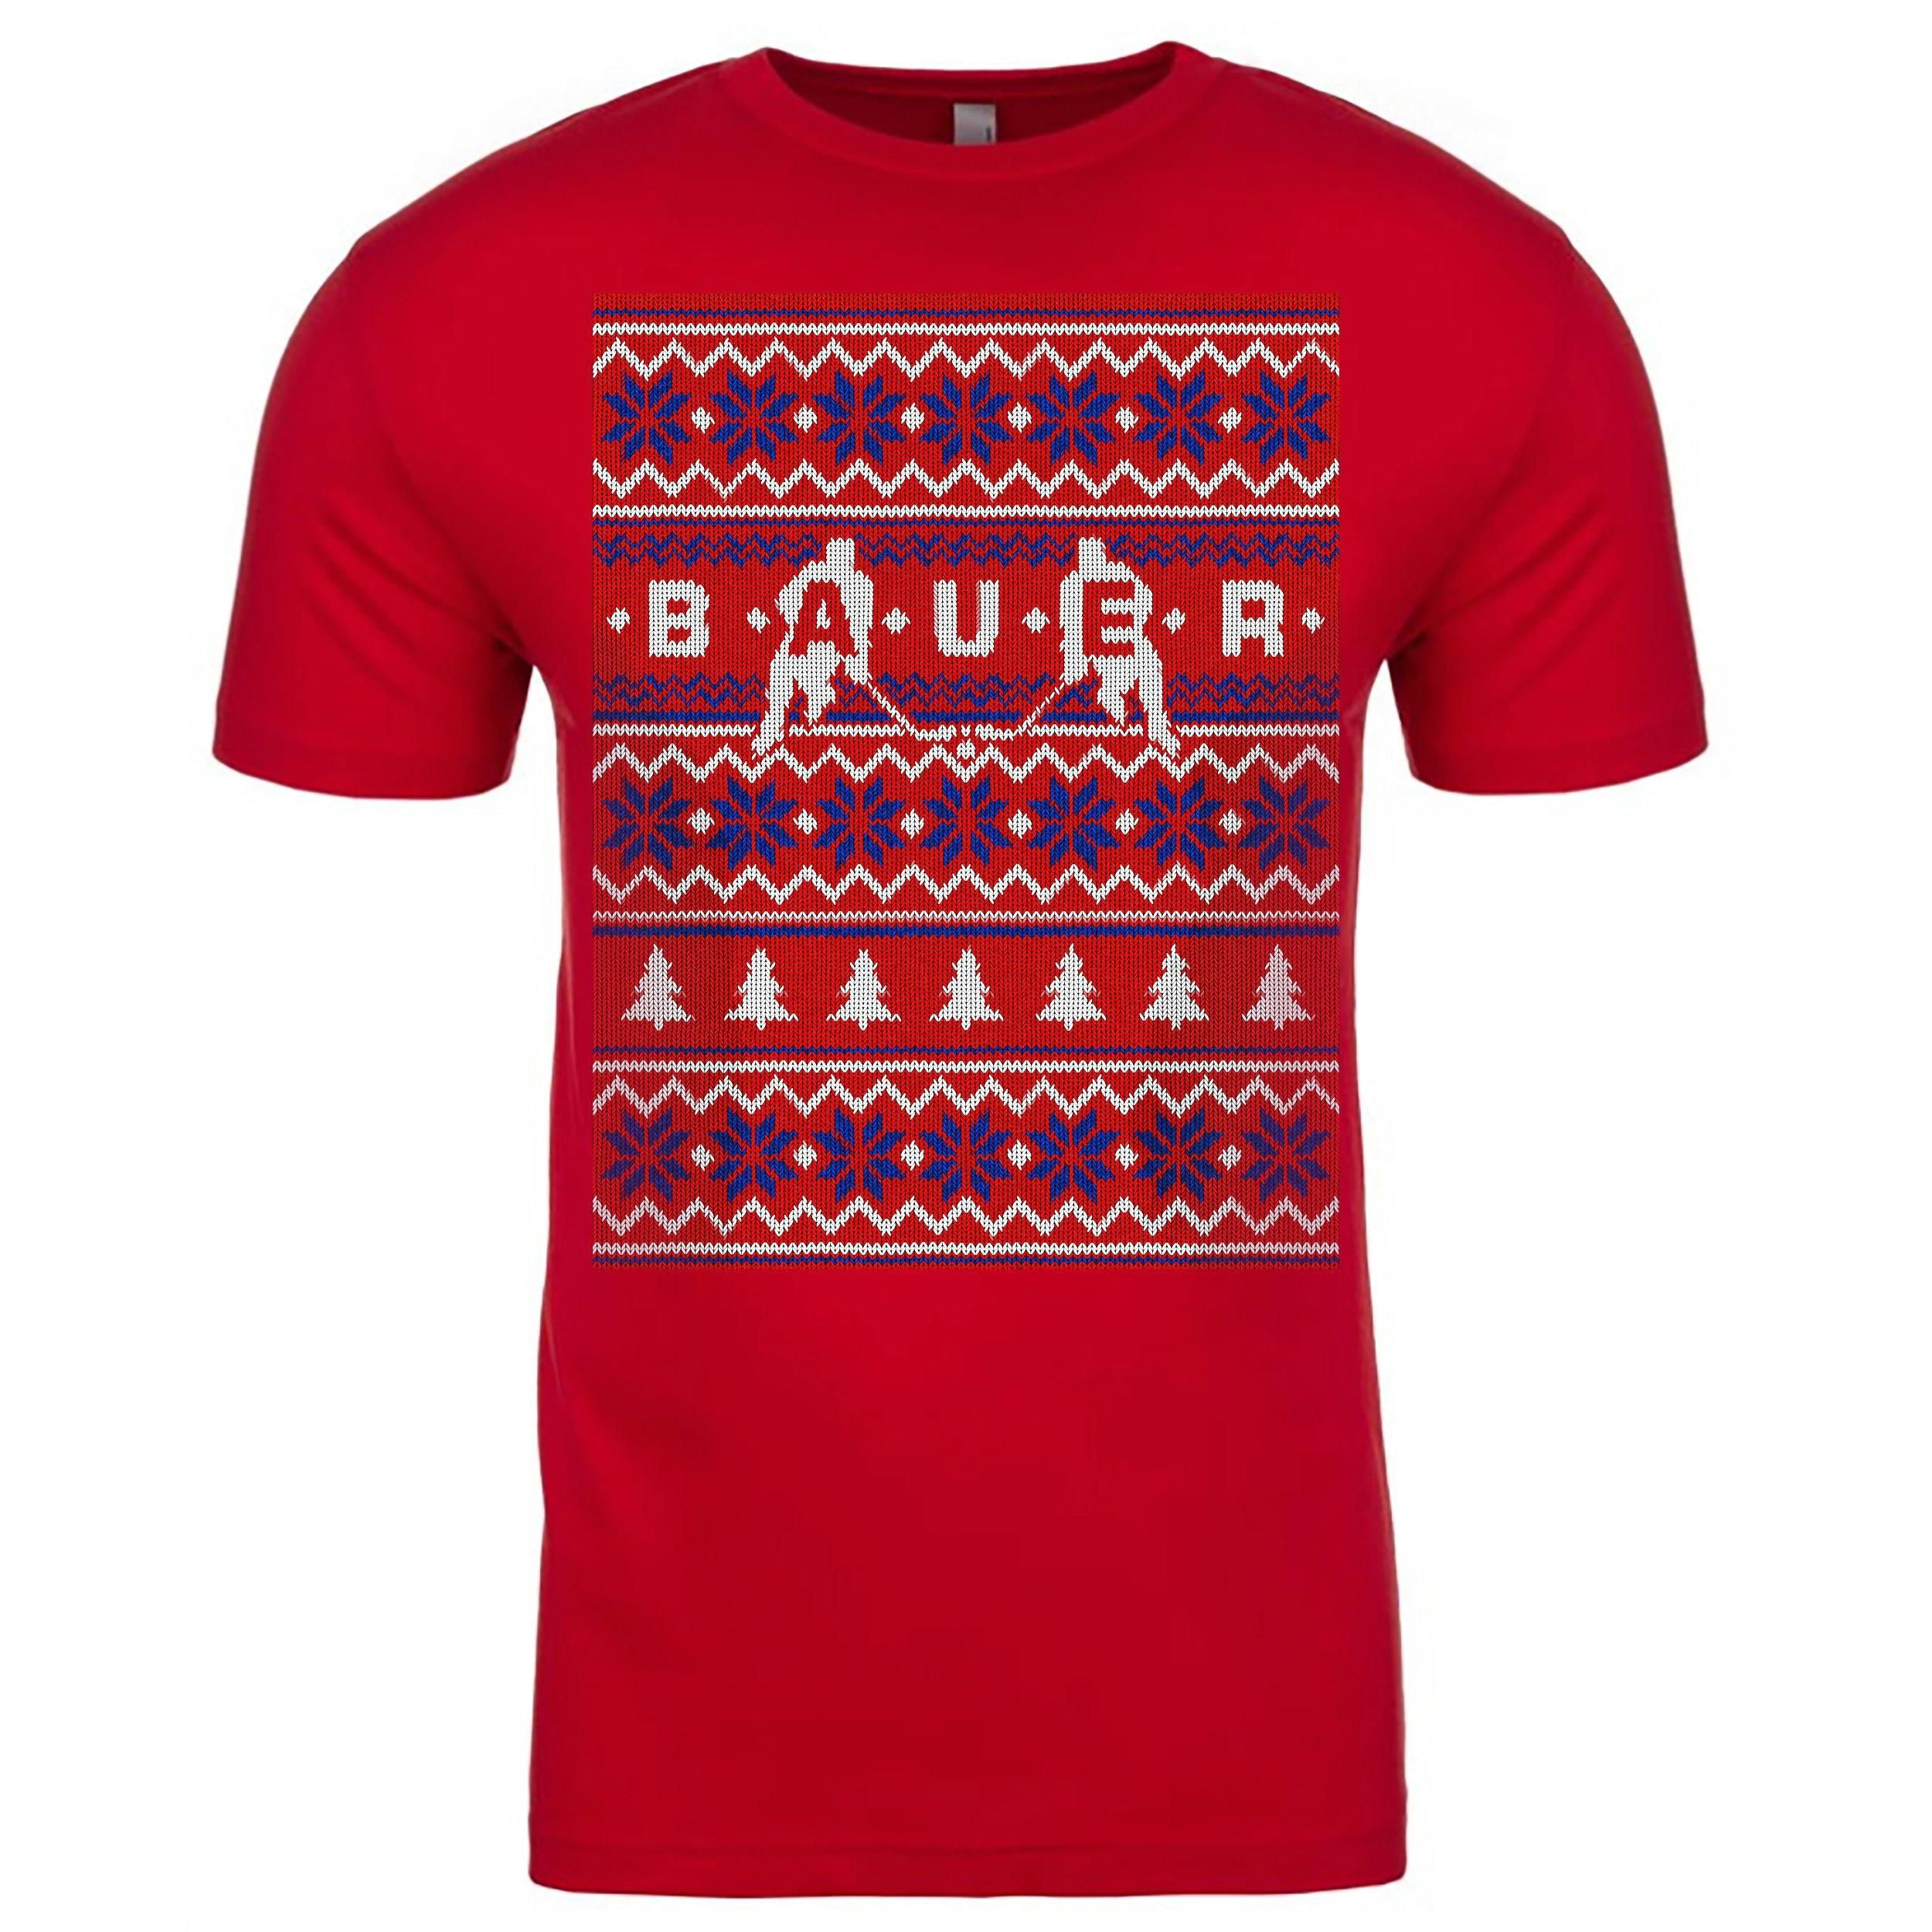 Bauer Short Sleeve Tee - Holiday Sweater Senior